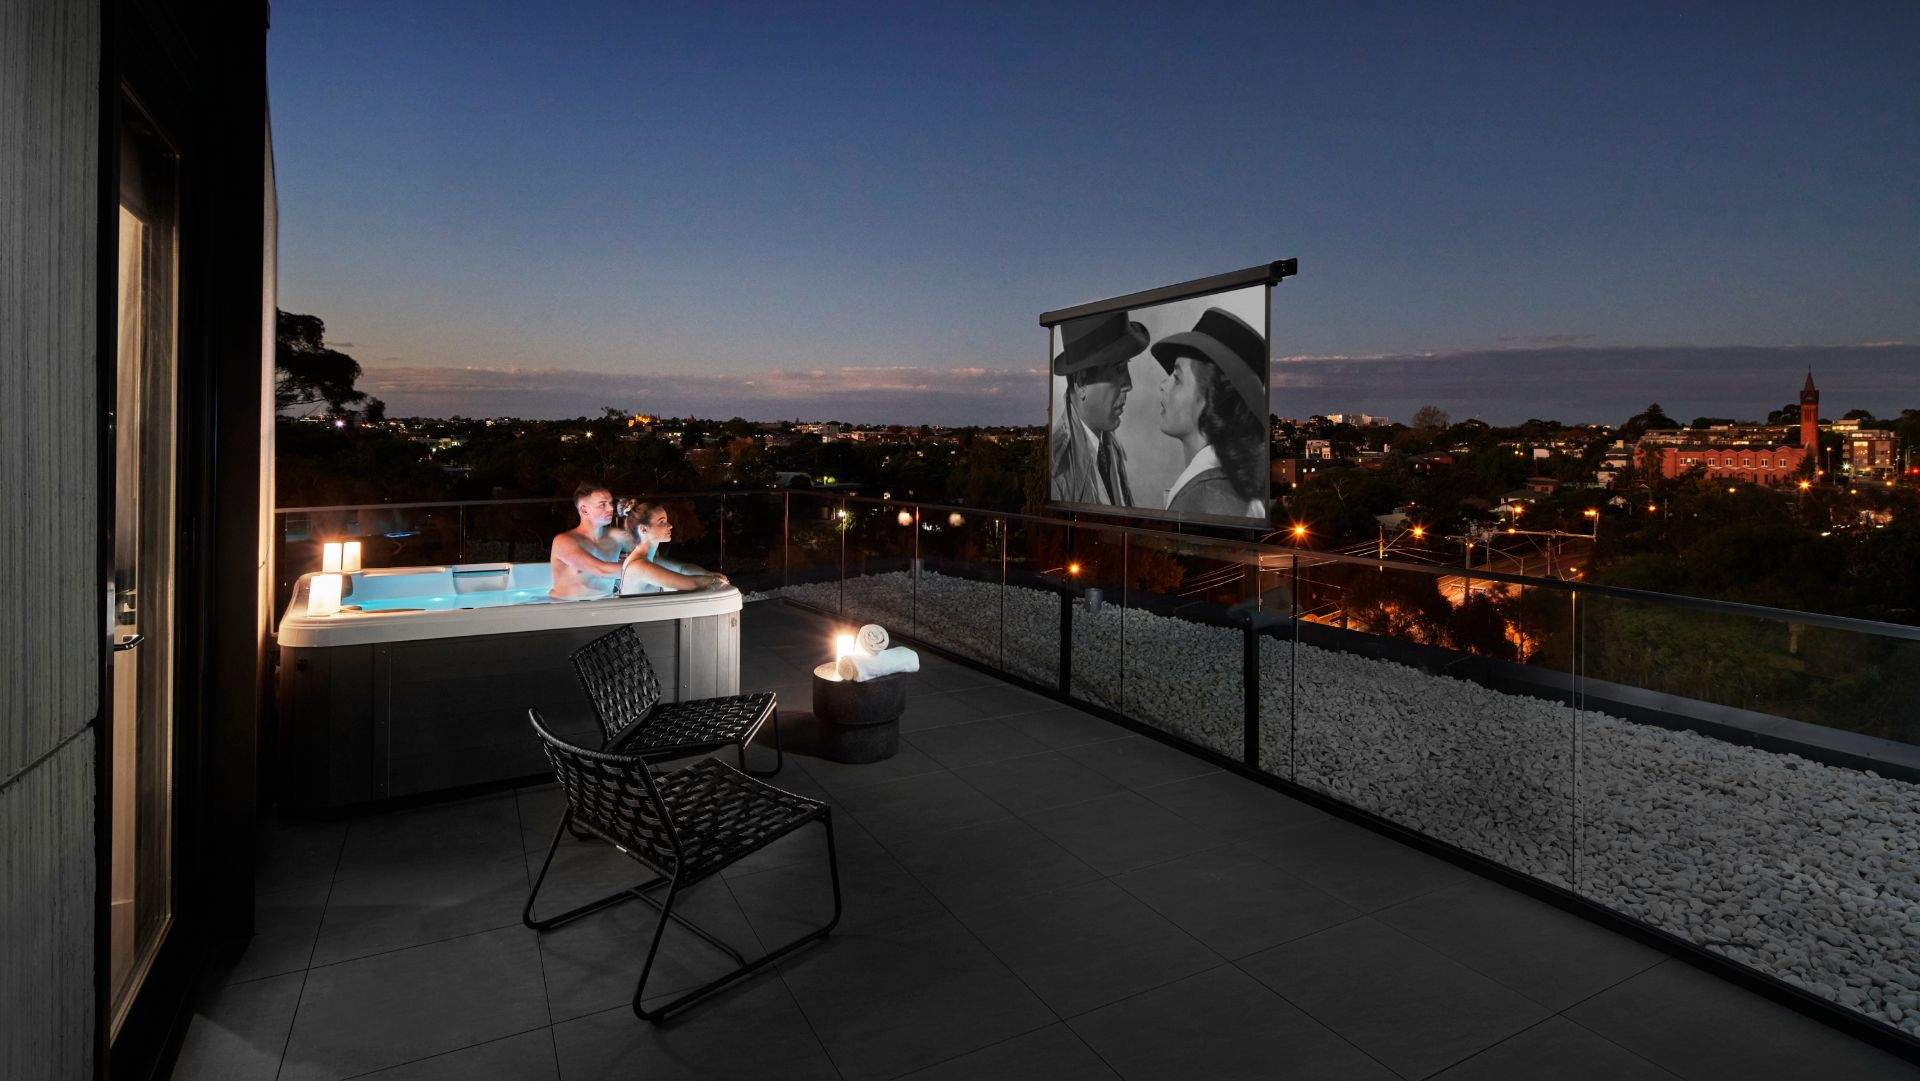 Element Richmond Hotel Is Now Offering Rooms with Outdoor Hot Tub and Movie Sessions